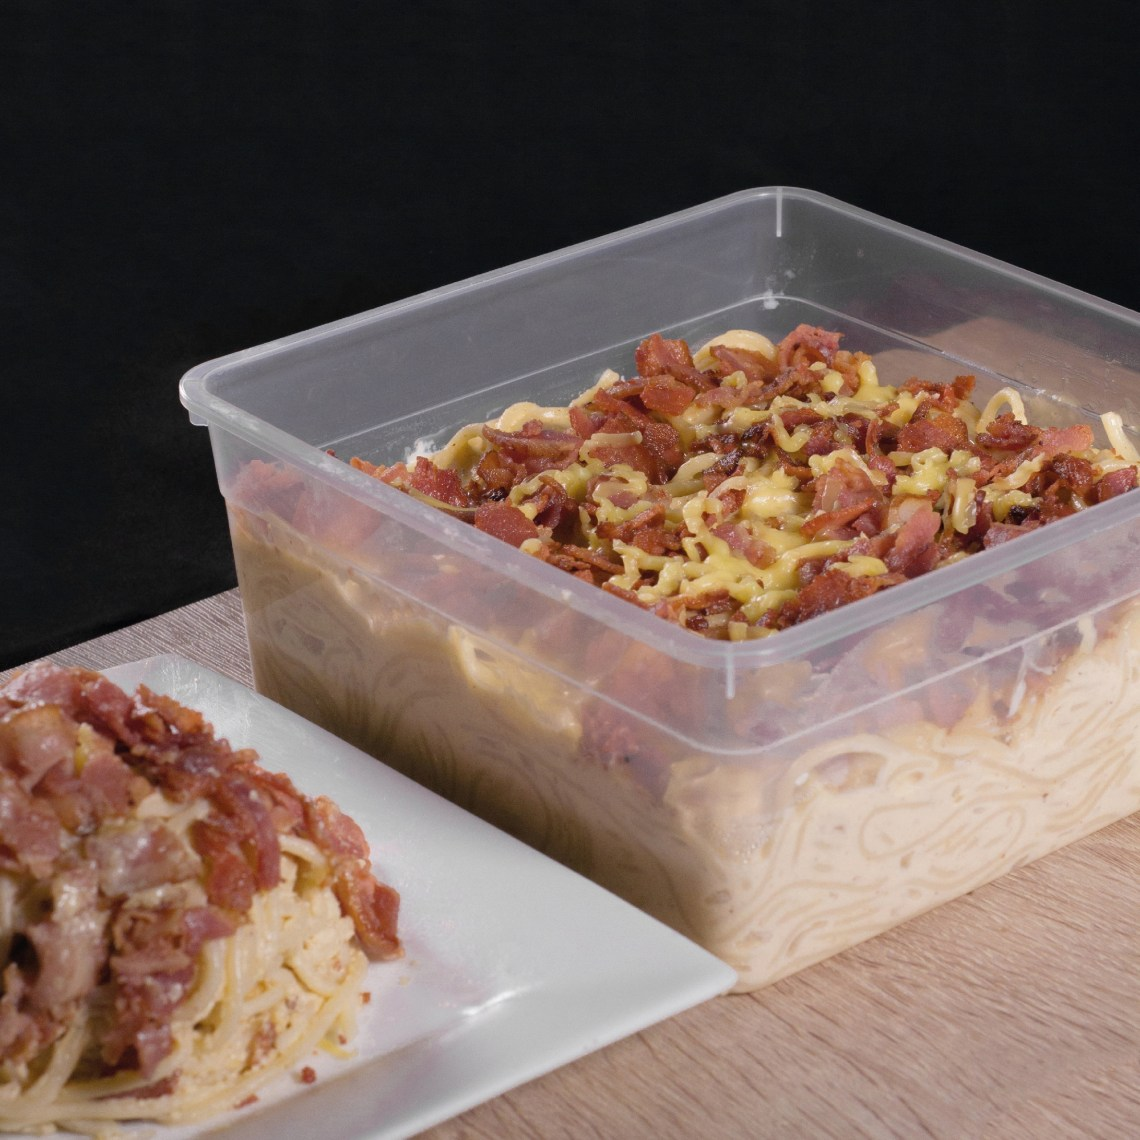 BACON CARBONARA (1KG - ₱1,200). Creamy, saucy and extremely flavorful carbonara, generously topped with crispy bacon completes the famous Mama V Delicious Bacon Carbonara - The Ultimate Party Must-Have for the Perfect Feast!